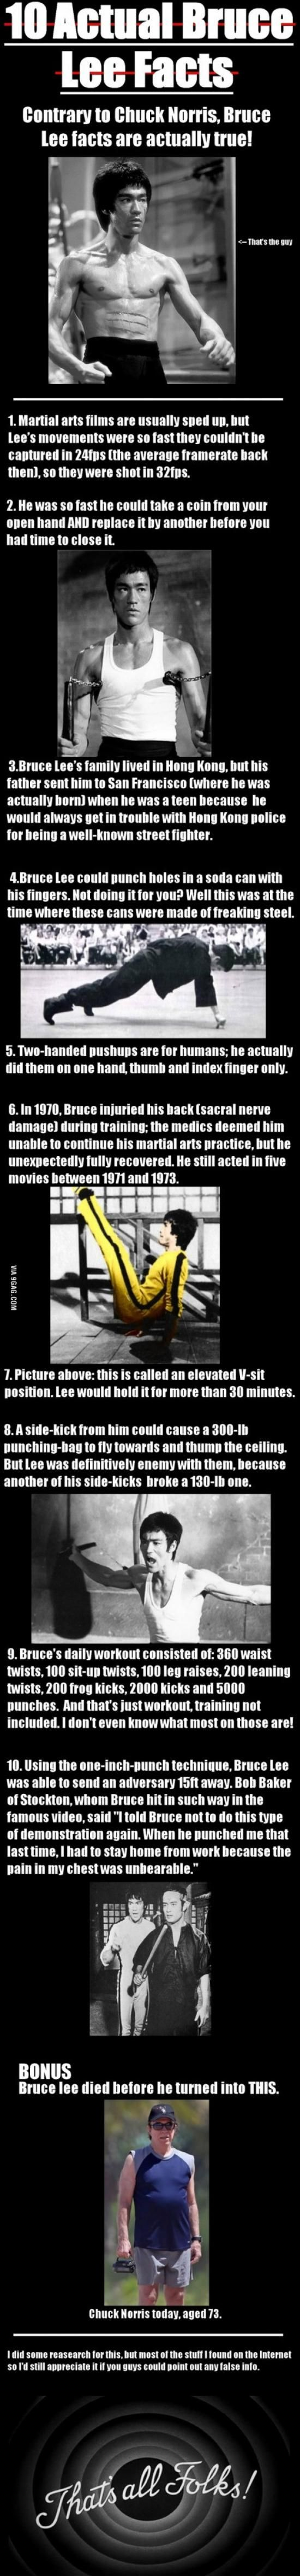 Bruce Lee facts. Bonus Fact: Bruce wore contact lens. He had trouble seeing distances, so his first martial arts focused on close-in fighting.